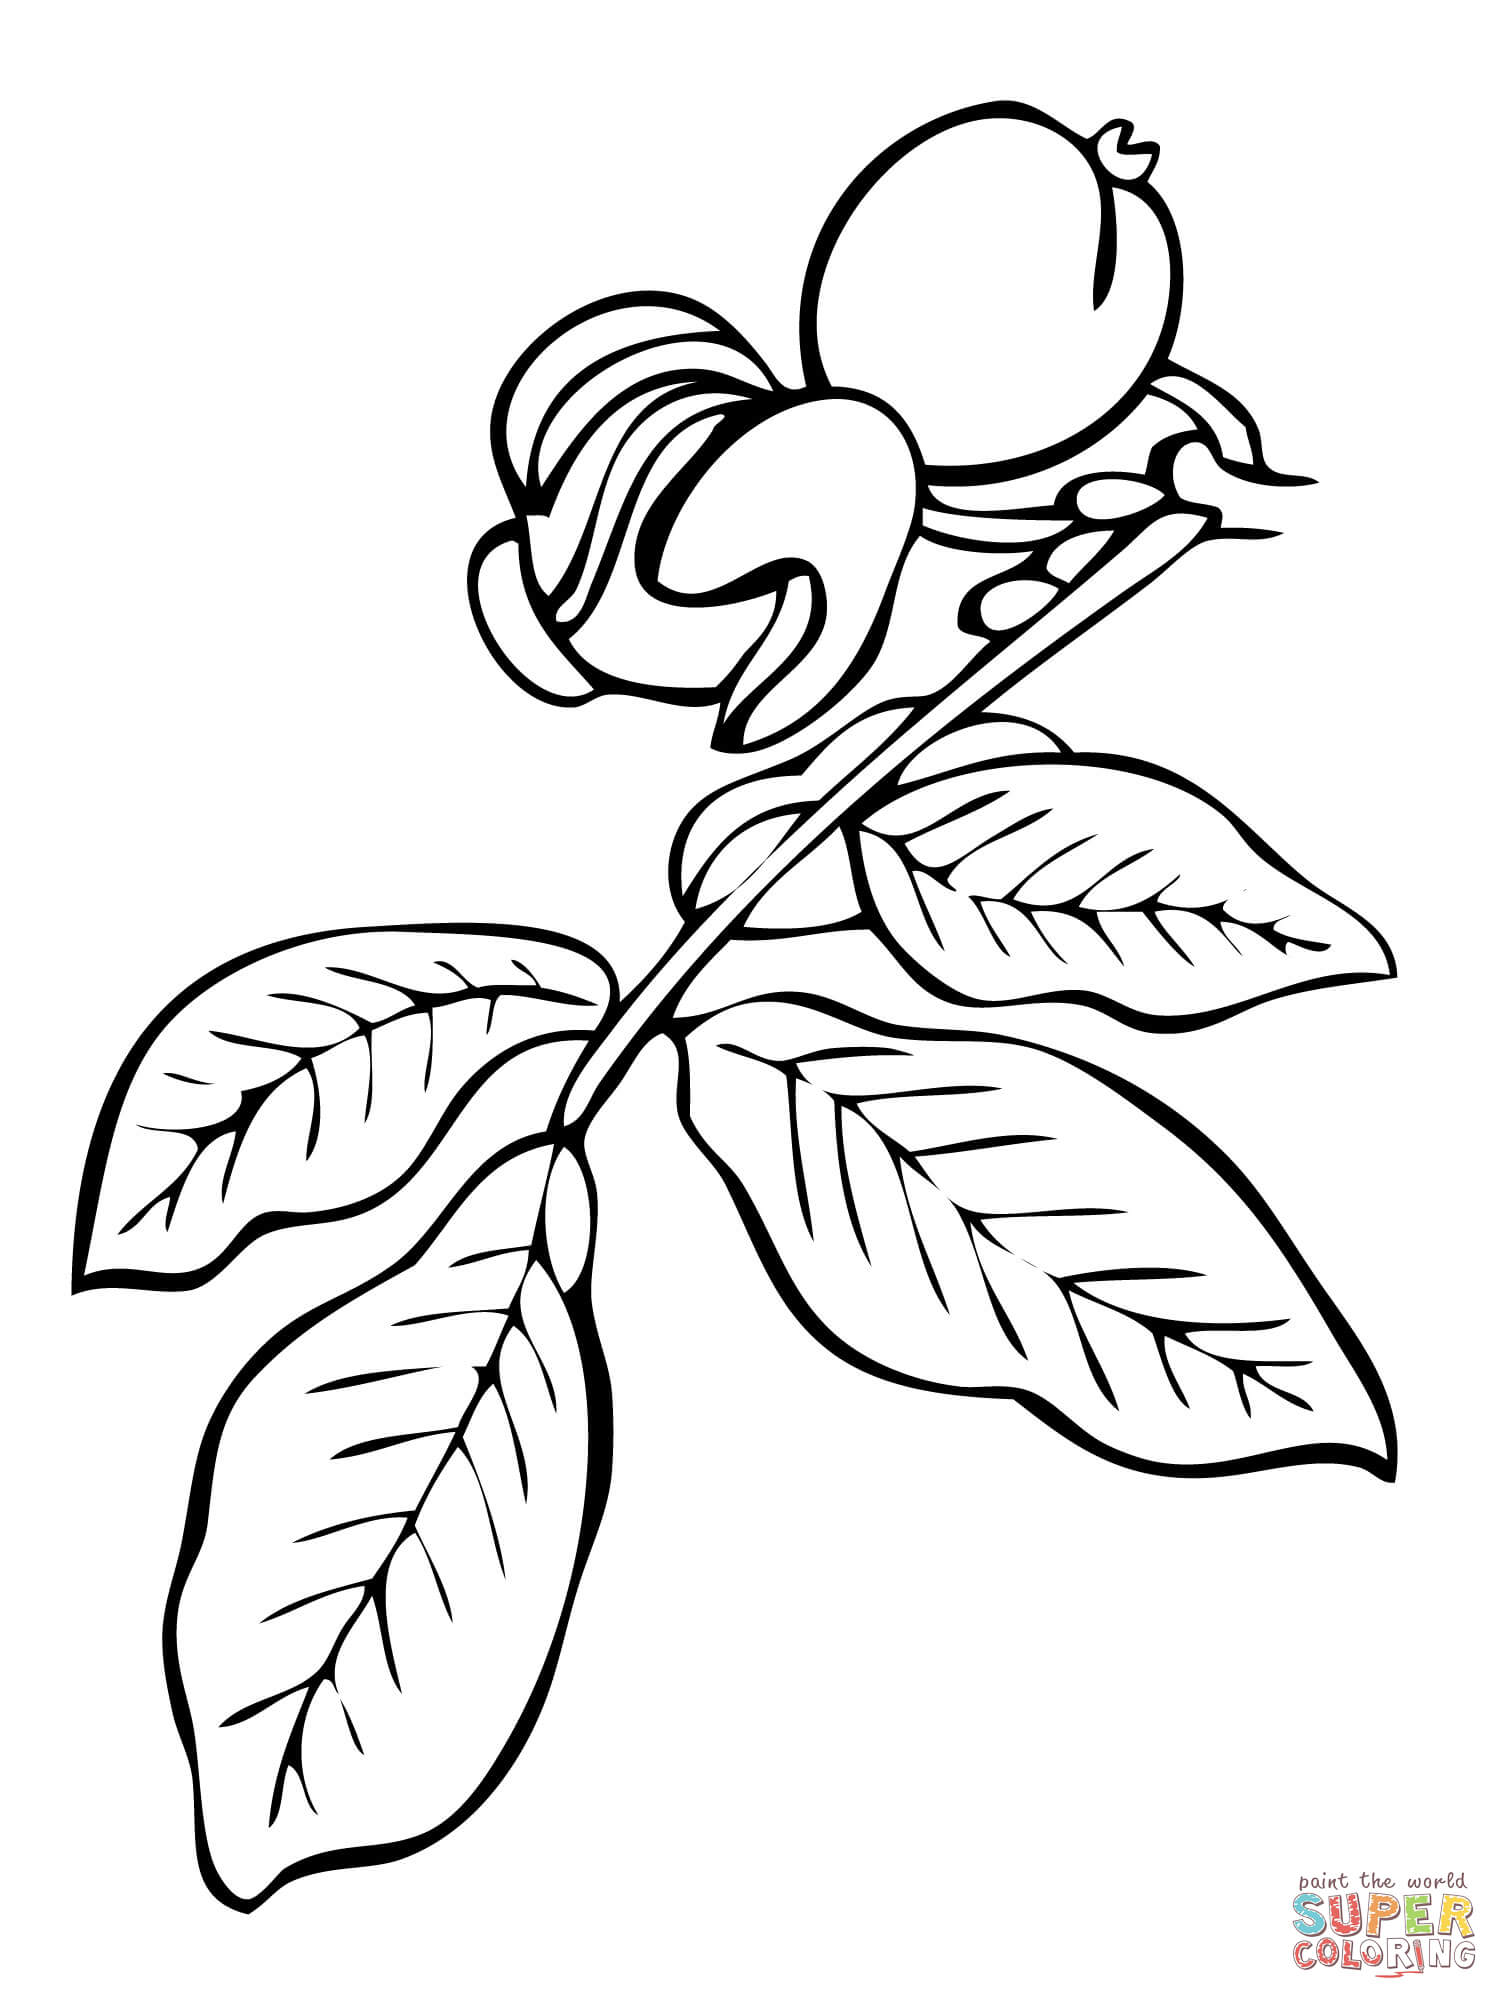 branch coloring page tree branches coloring pages clipart best page branch coloring